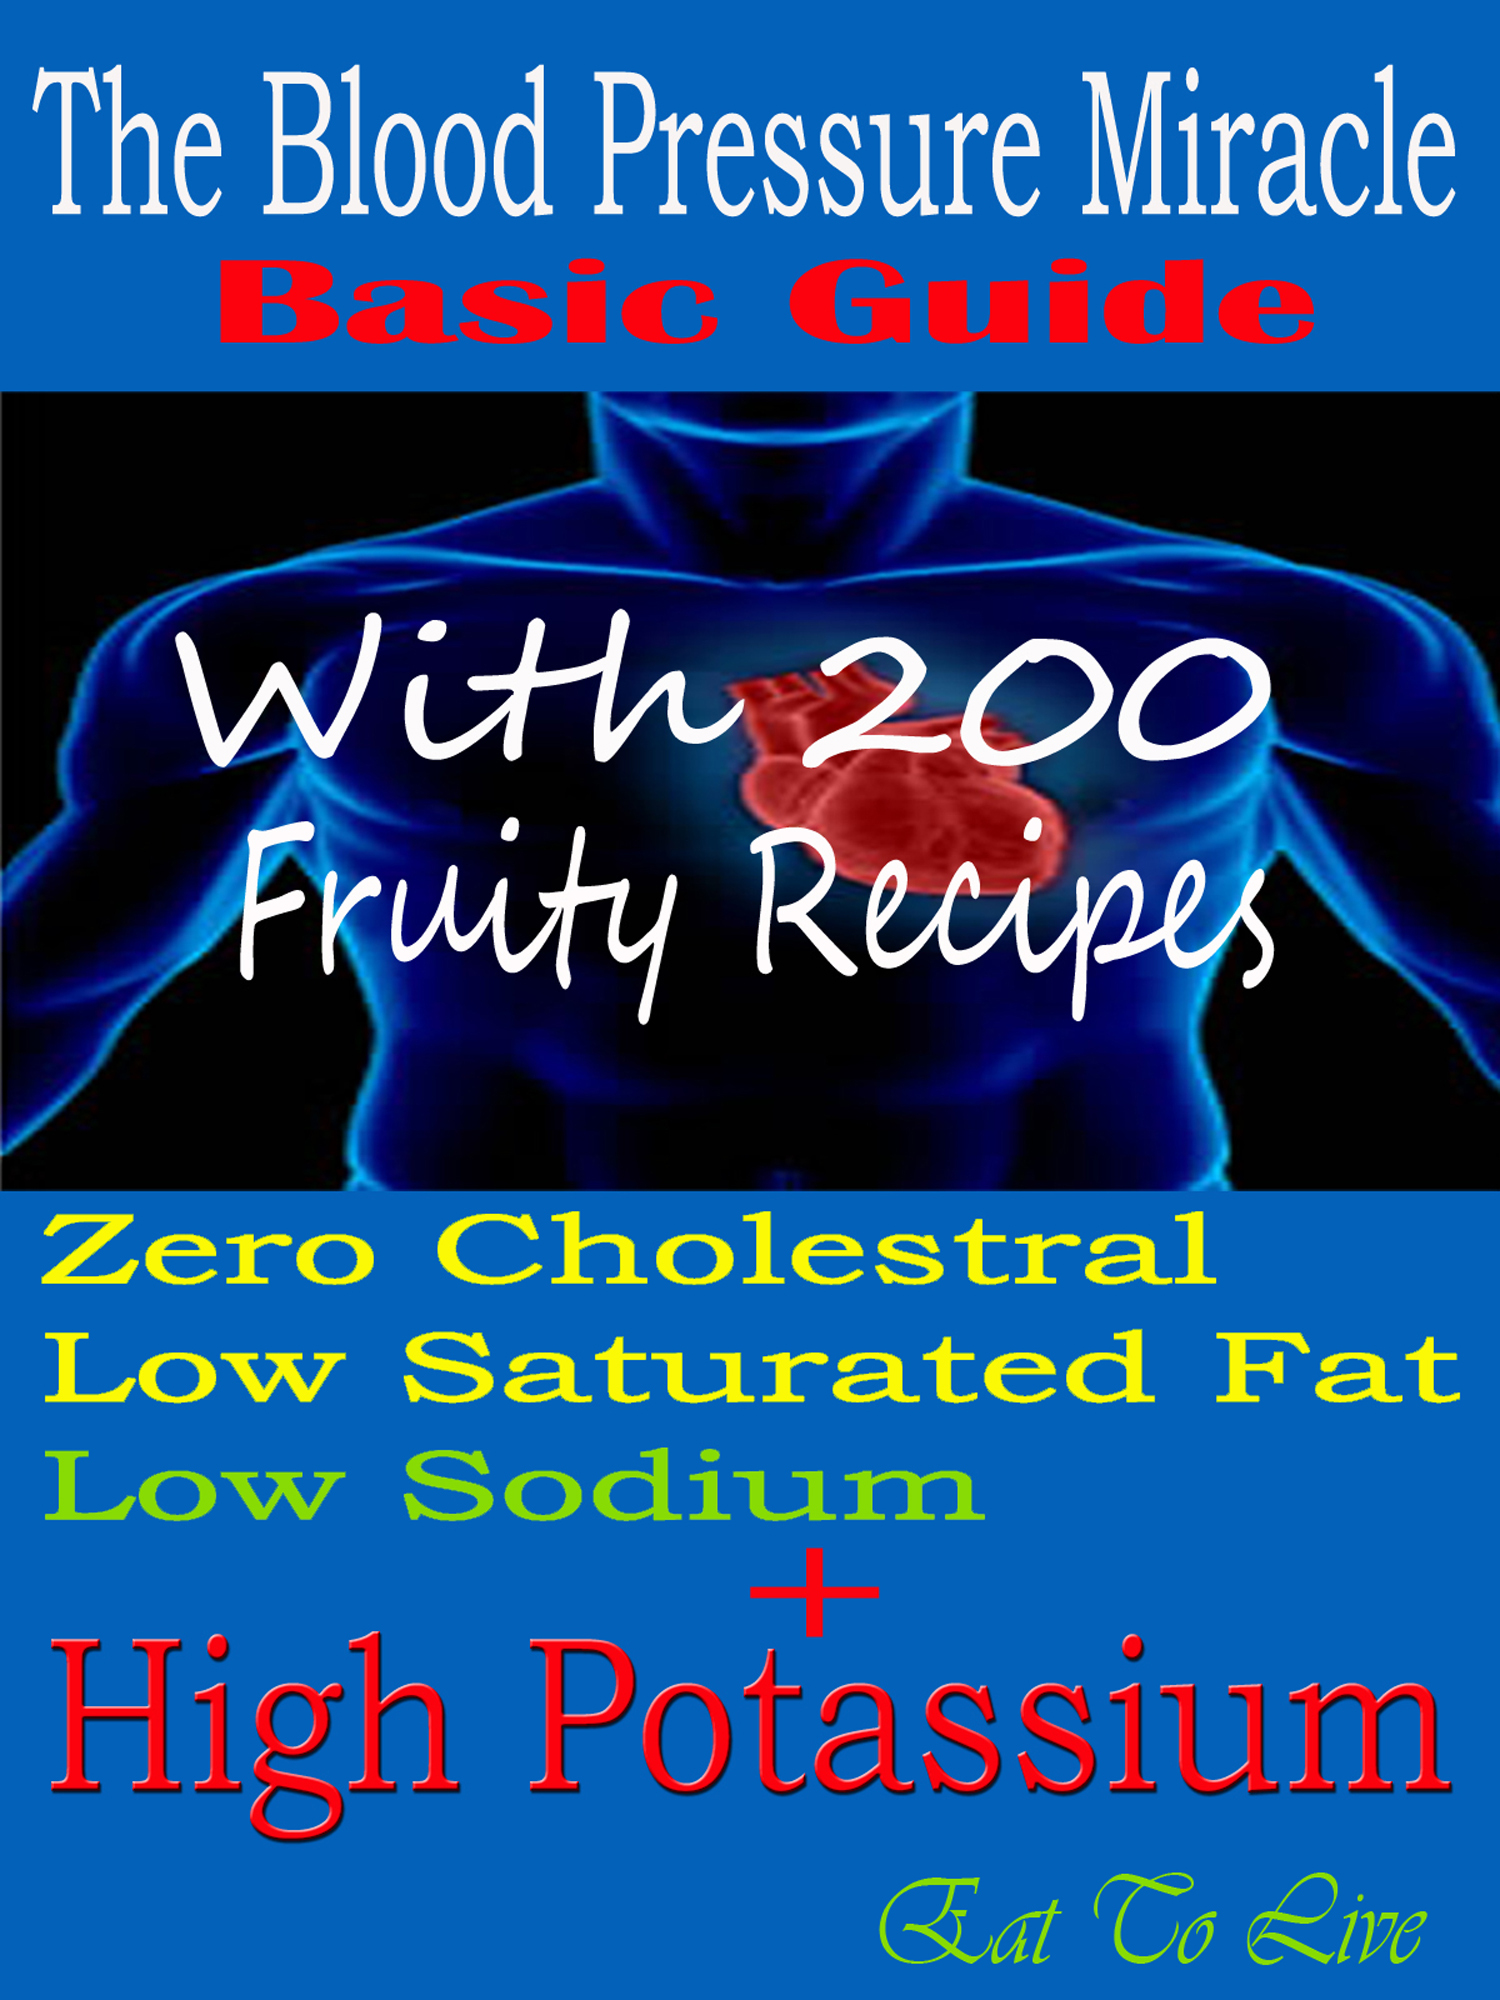 The Blood Pressure Miracle Basic Guide: With 200 Fruity Recipes: Zero Cholesterol: Low Saturated Fat: Low Sodium + High Potassium